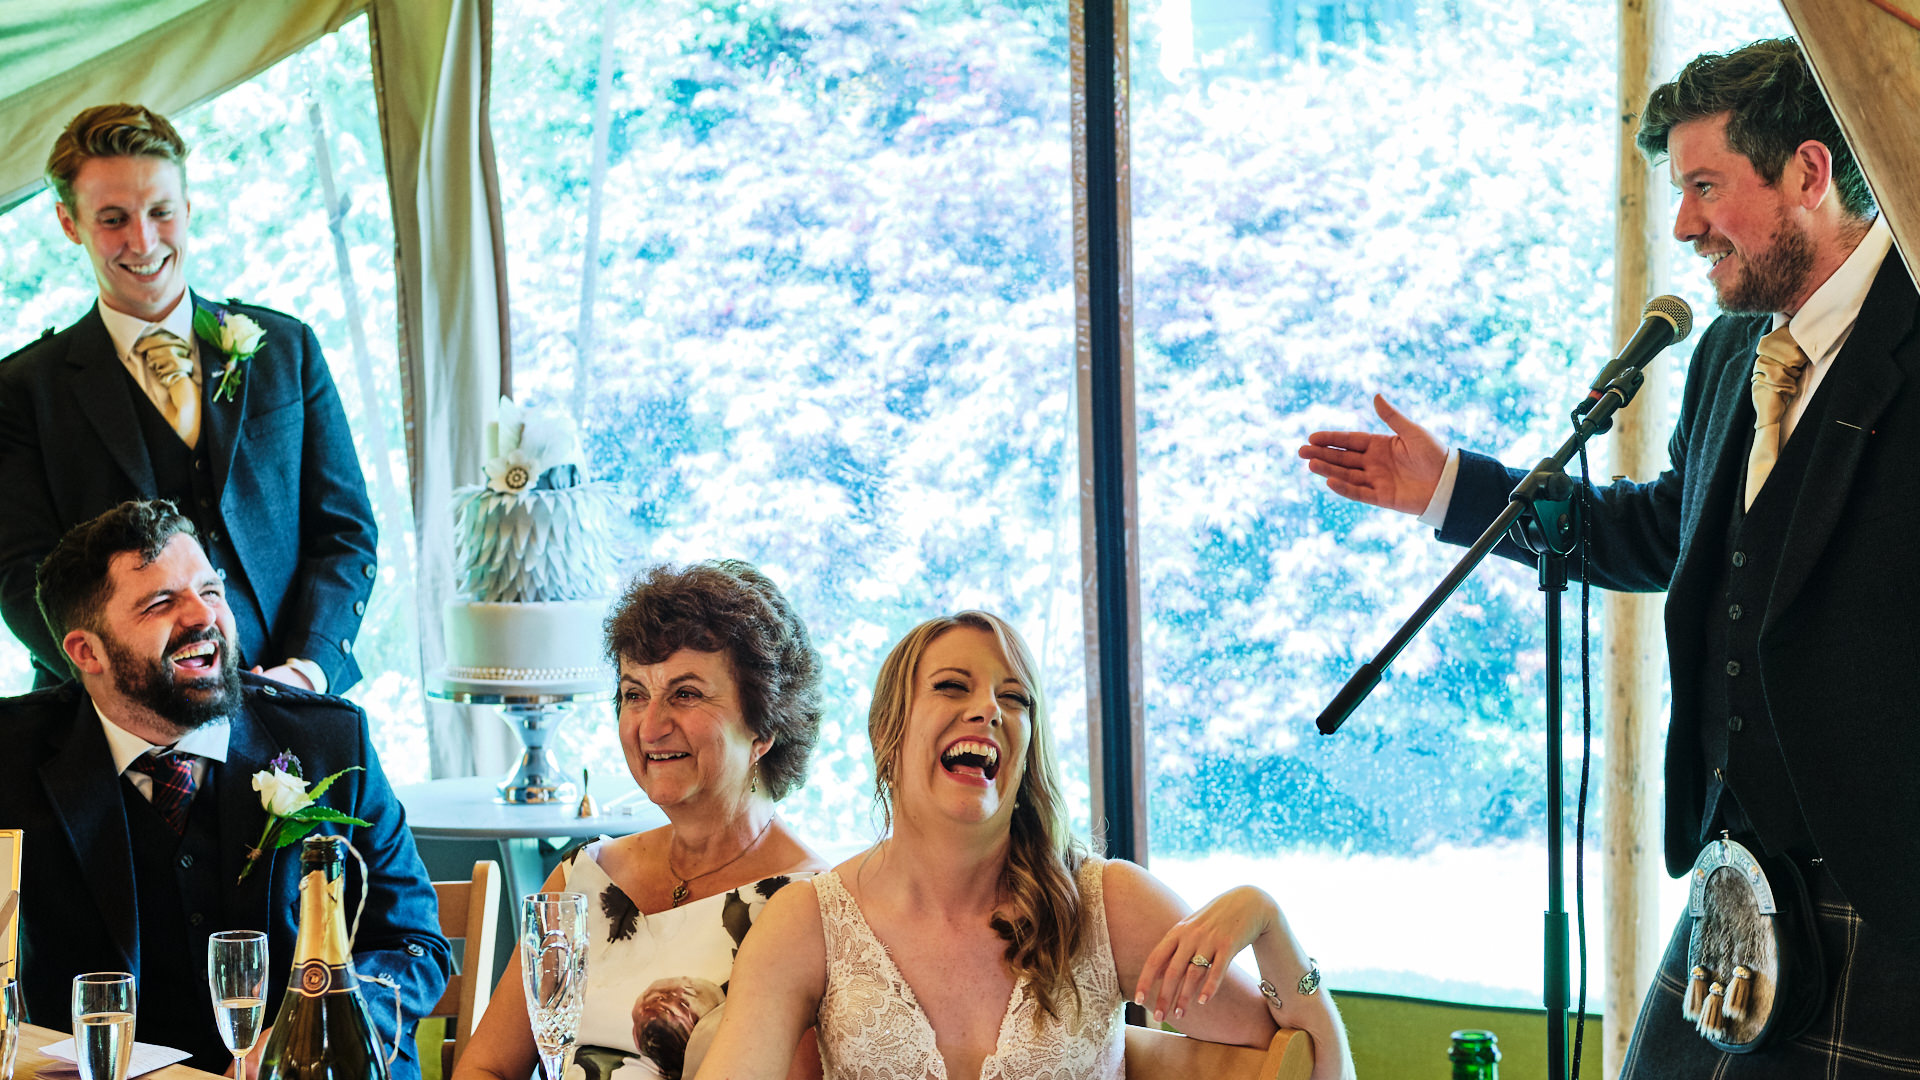 colour photograph of the best man  giving a speech at a wedding while the wedding party are laughing